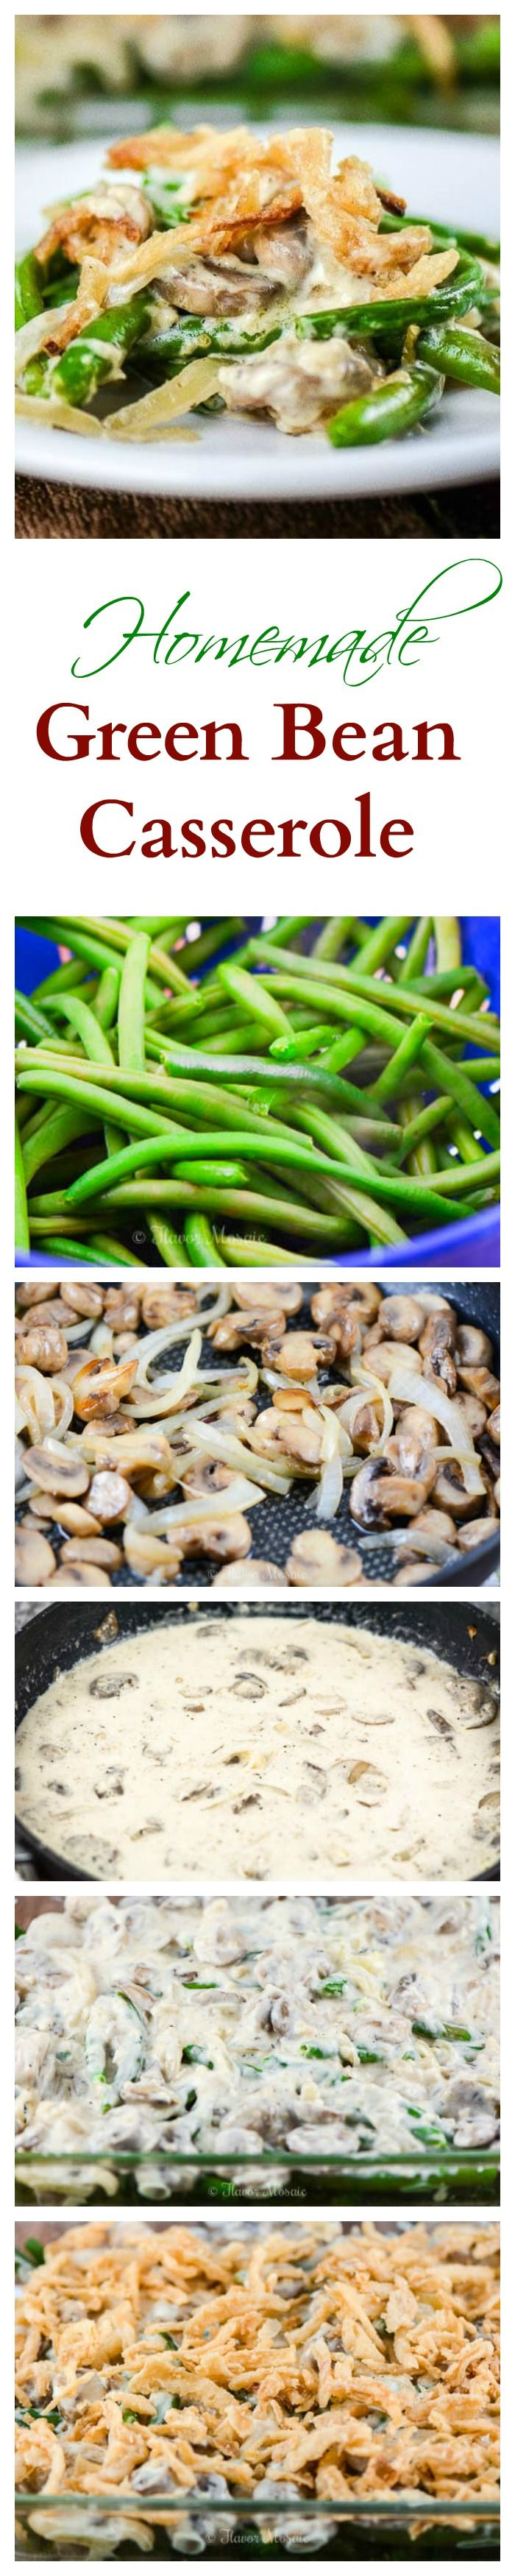 This Homemade Green Bean Casserole, a traditional green bean casserole that is made from scratch with fresh green beans and a homemade mushroom sauce and topped with french fried onions, will be a hit with your family and friends on Thanksgiving. There are no canned soups in this Thanksgiving Green Bean Casserole.